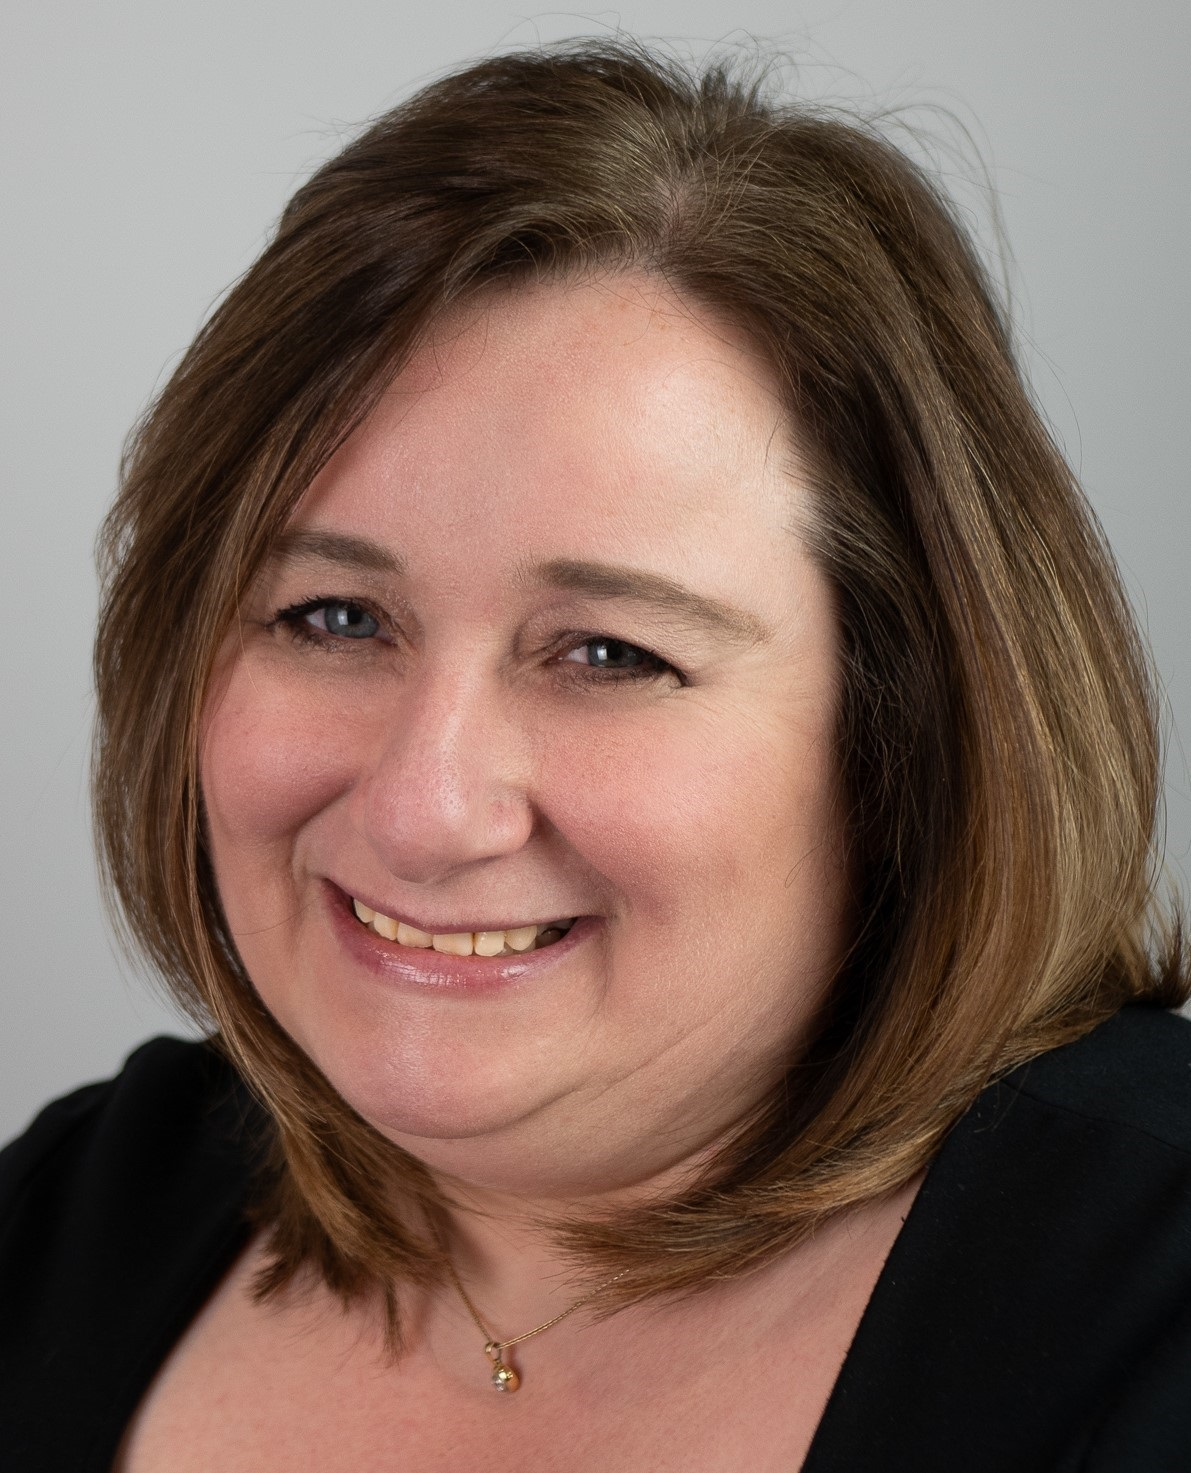 Gill Gorman appointed Group HR Director